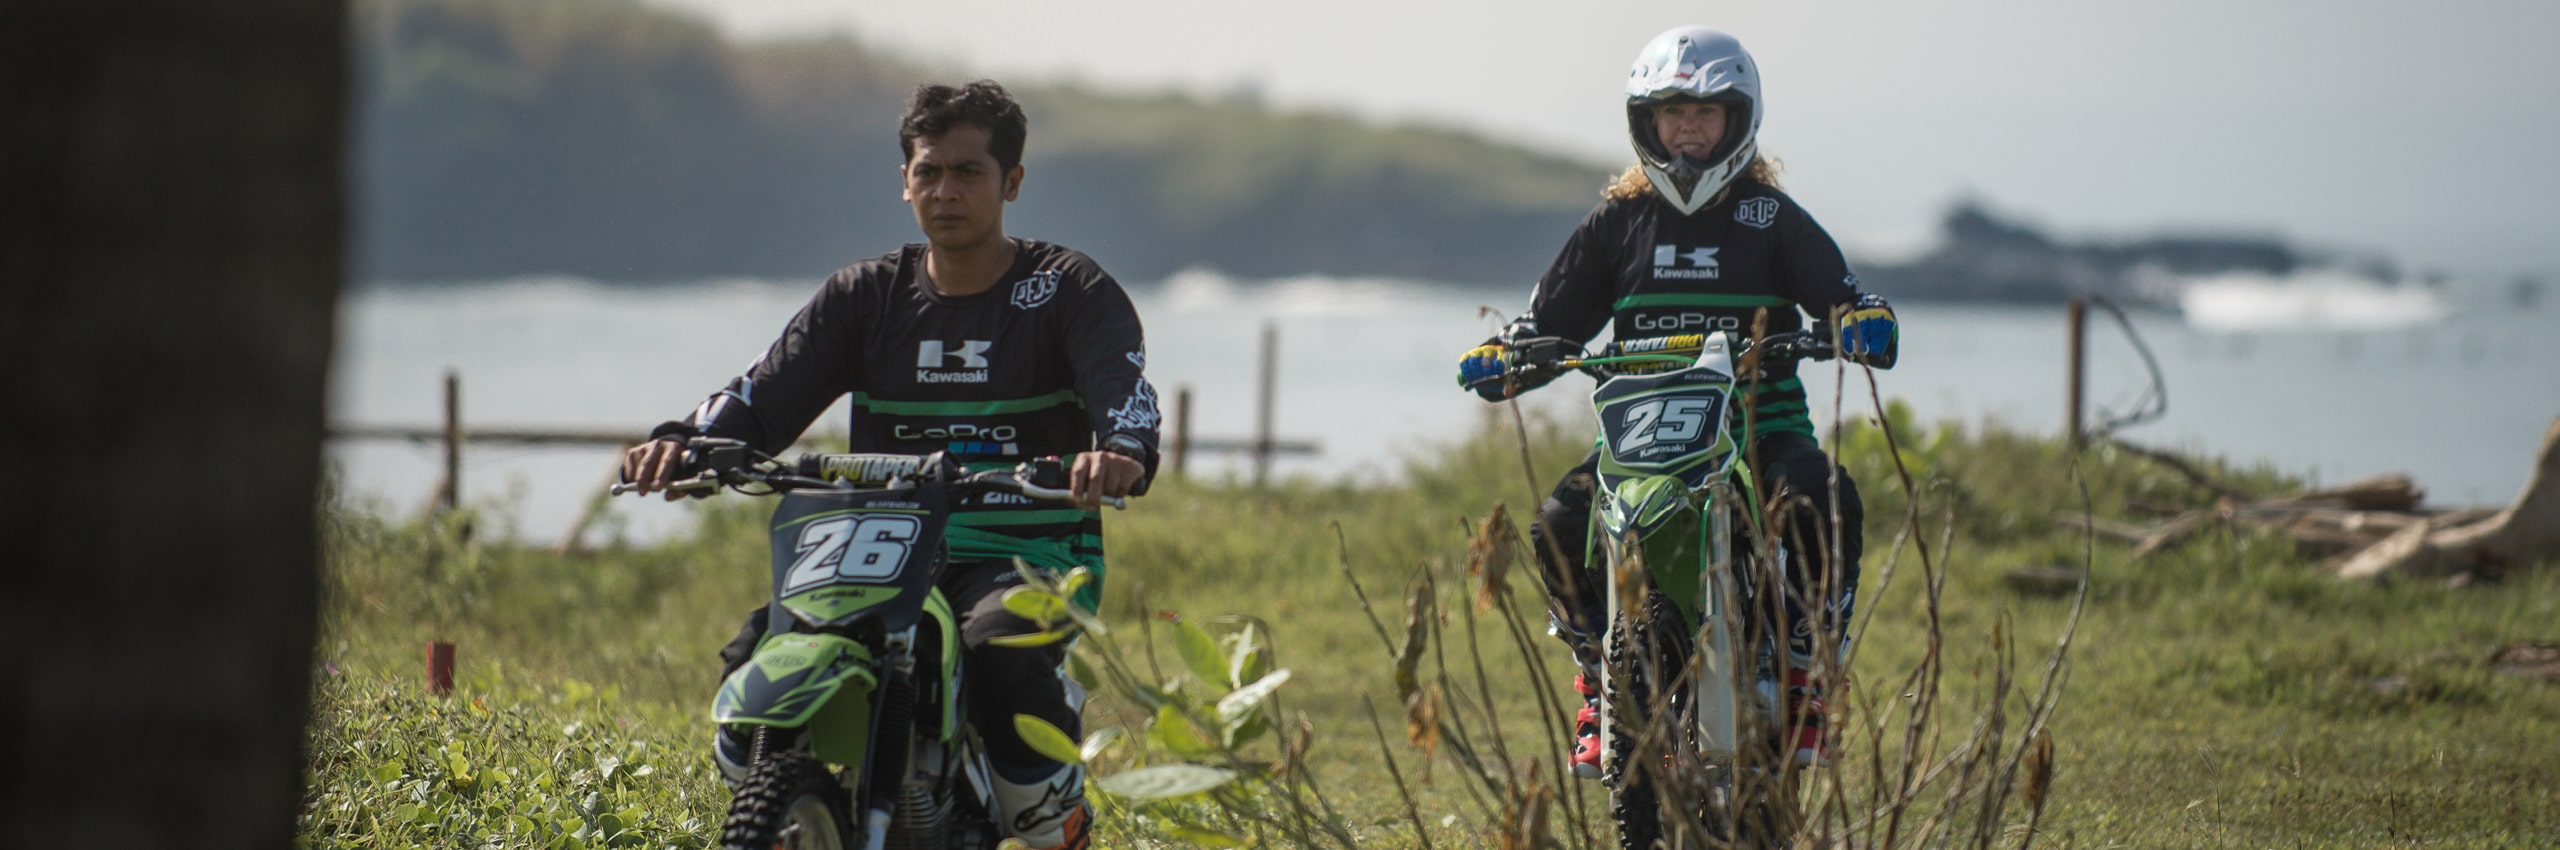 Bali_Dirt_Bikes_Learn_to_ride_Slider3